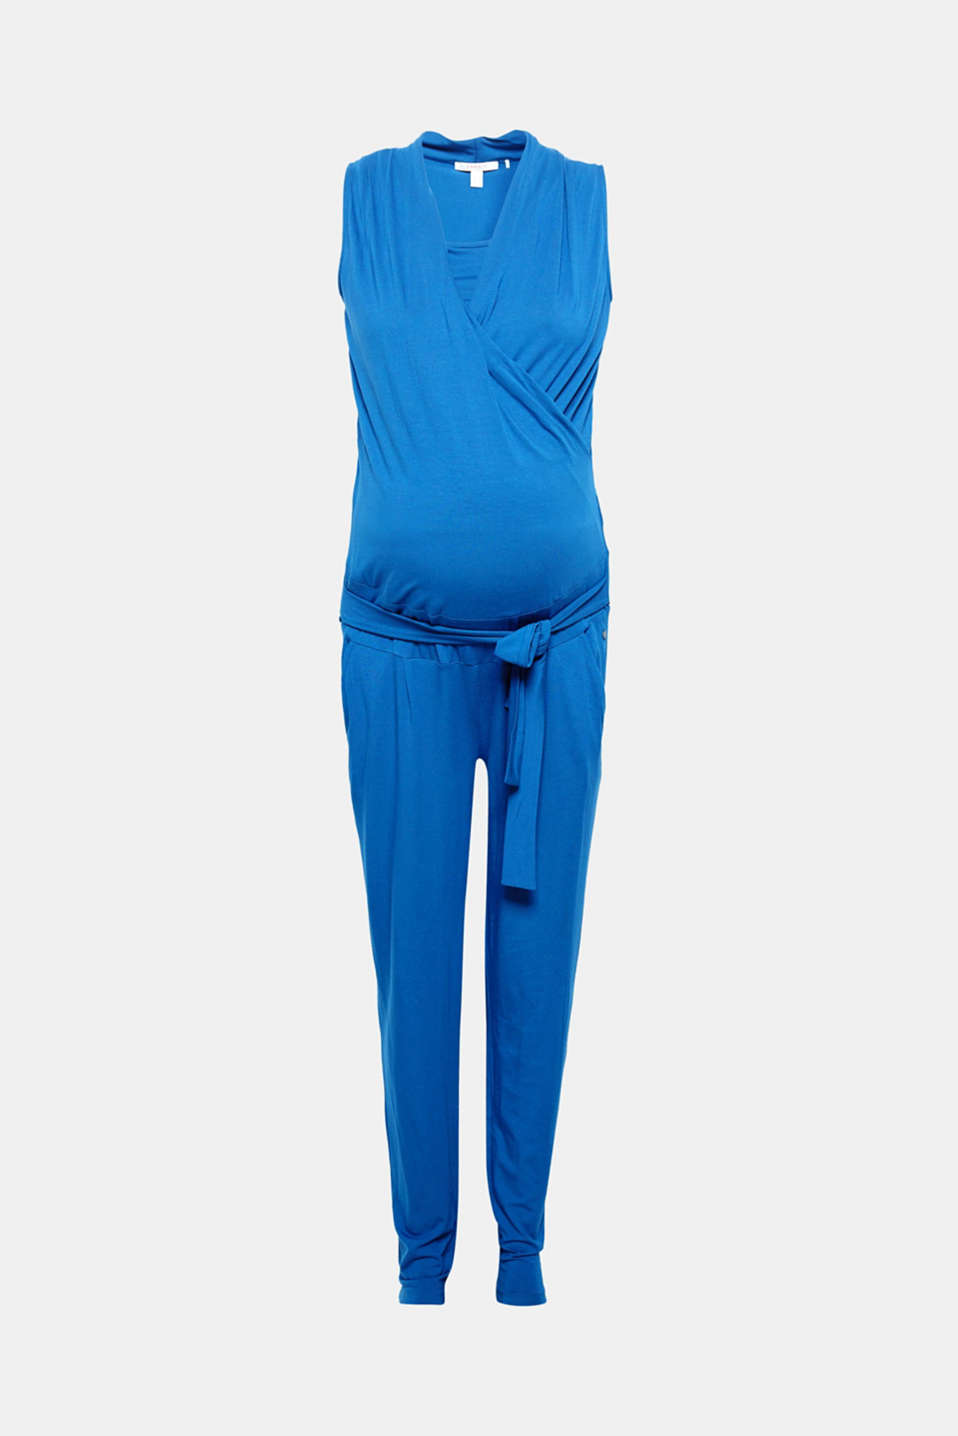 Too stylish to just wear while nursing: comfortable jumpsuit with a wrap-over effect and tie-around belt!